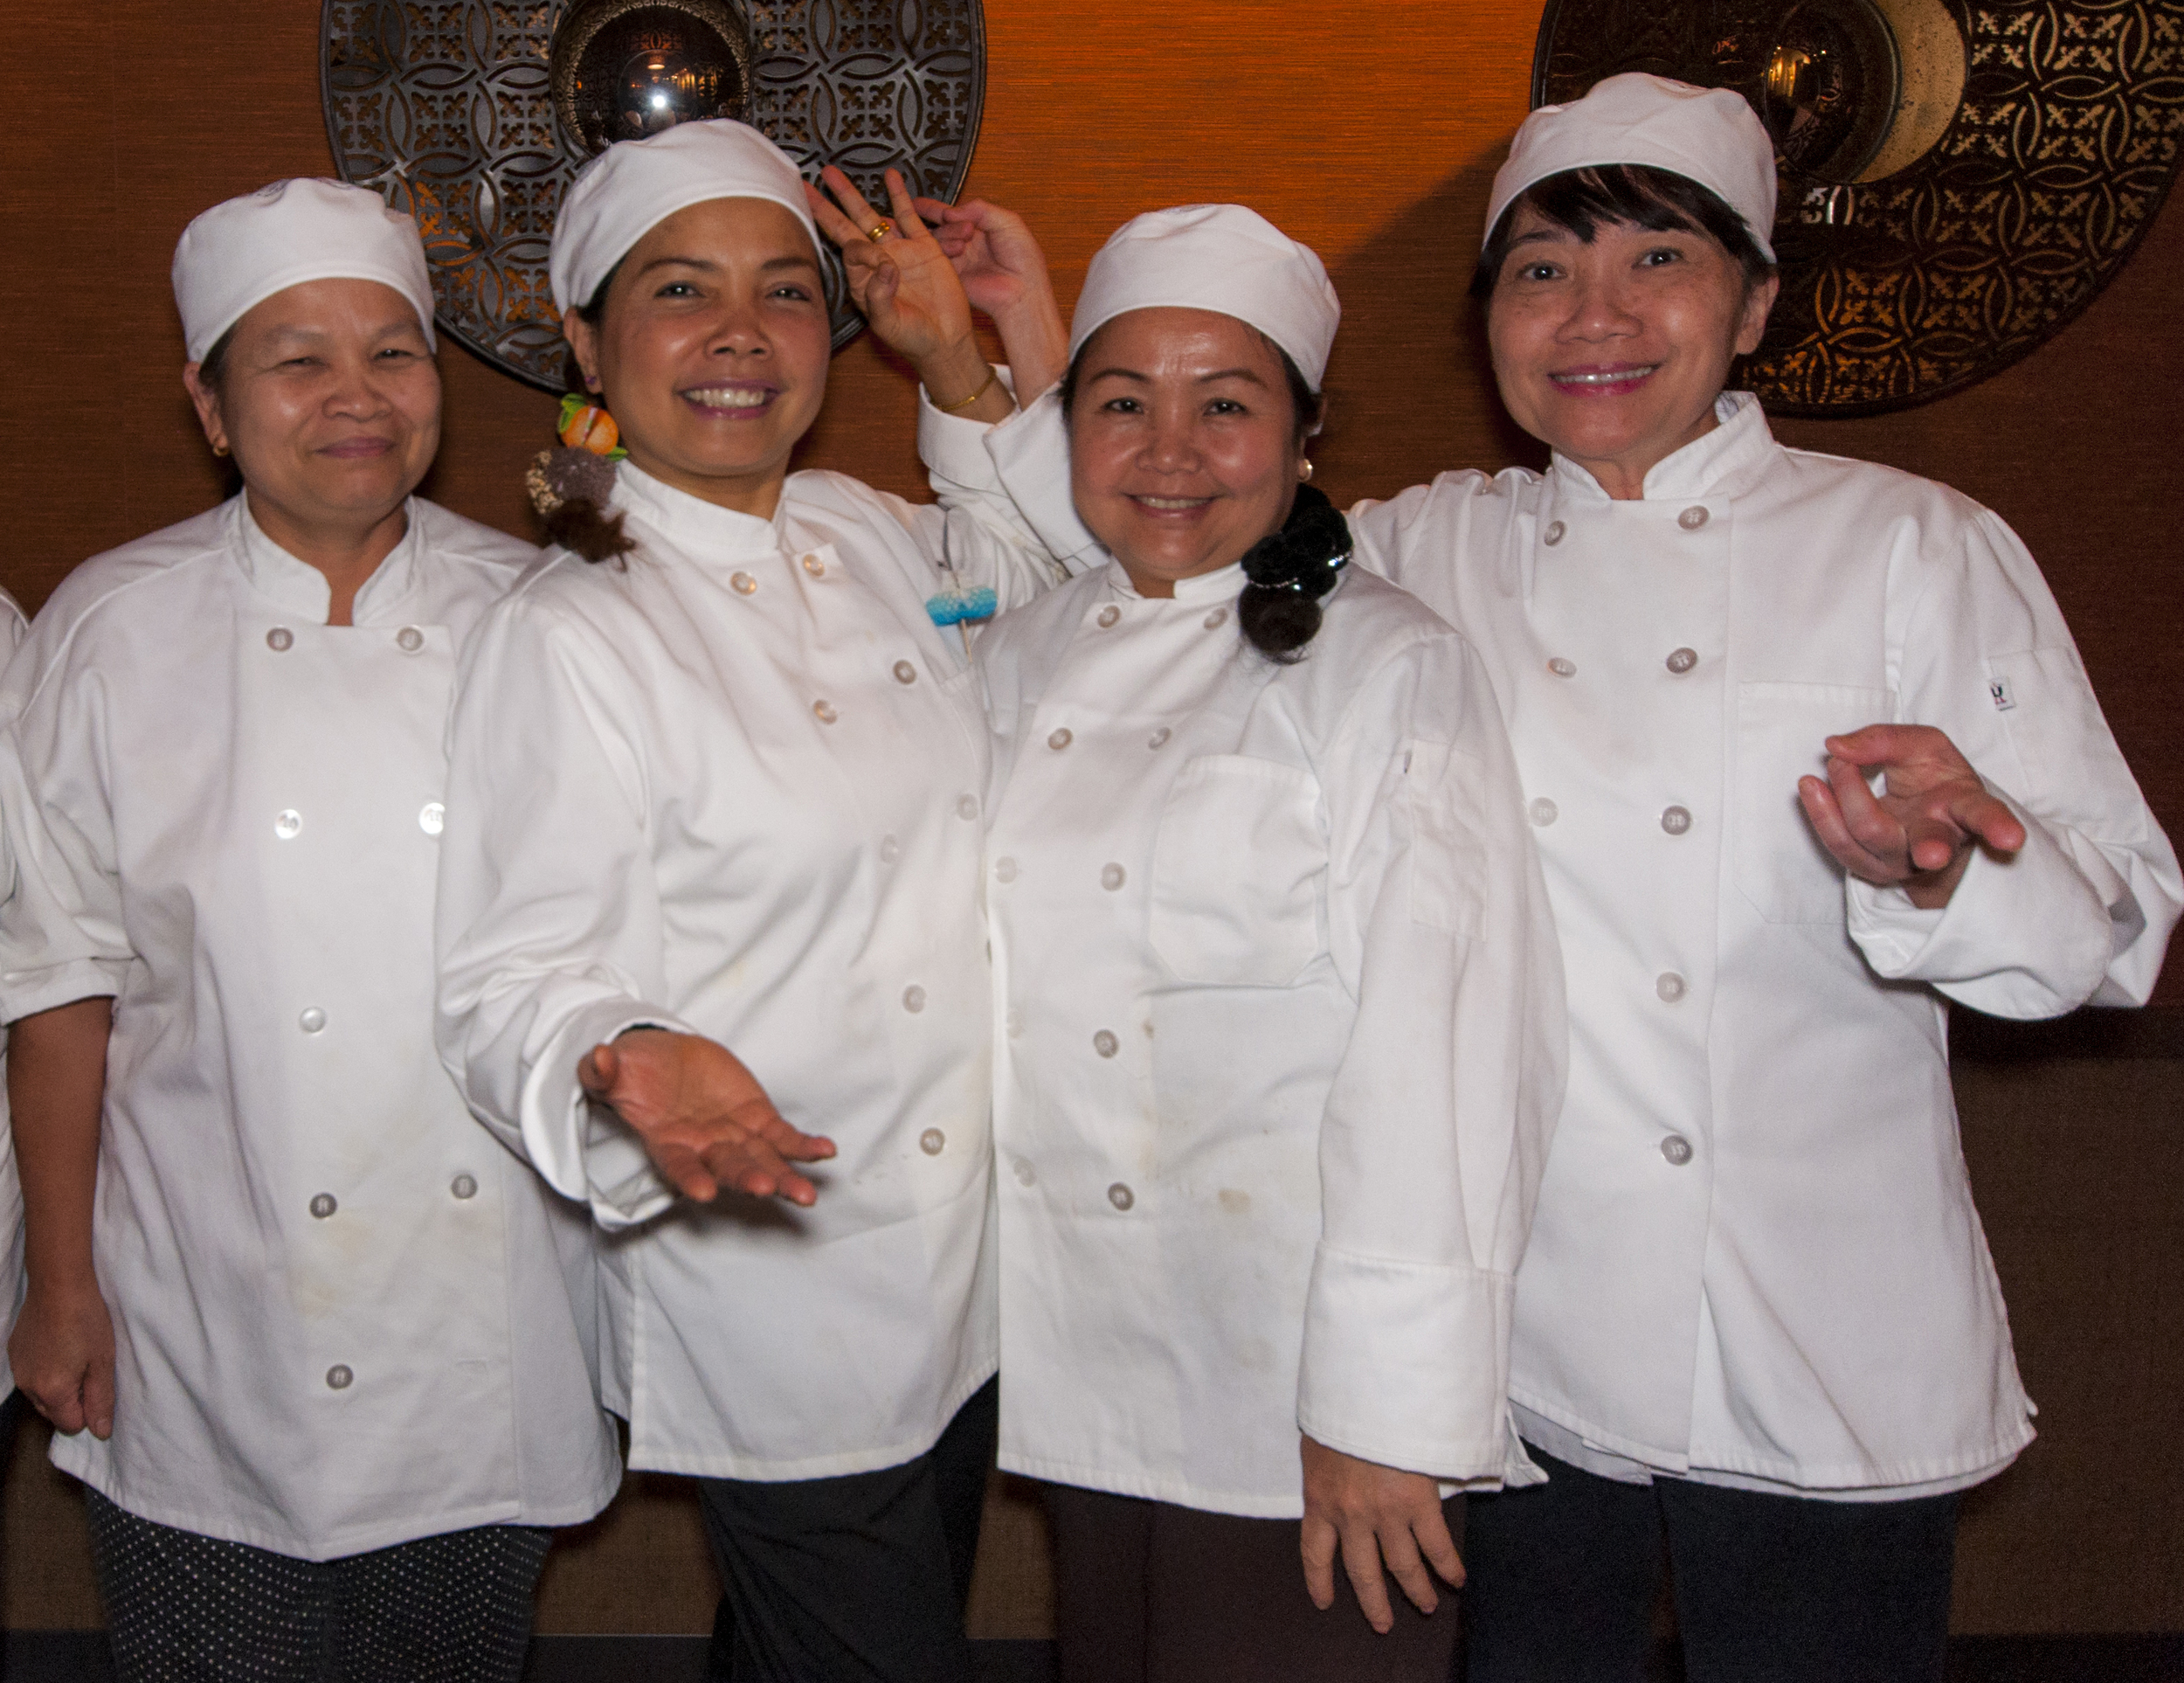 Our talented chefs.